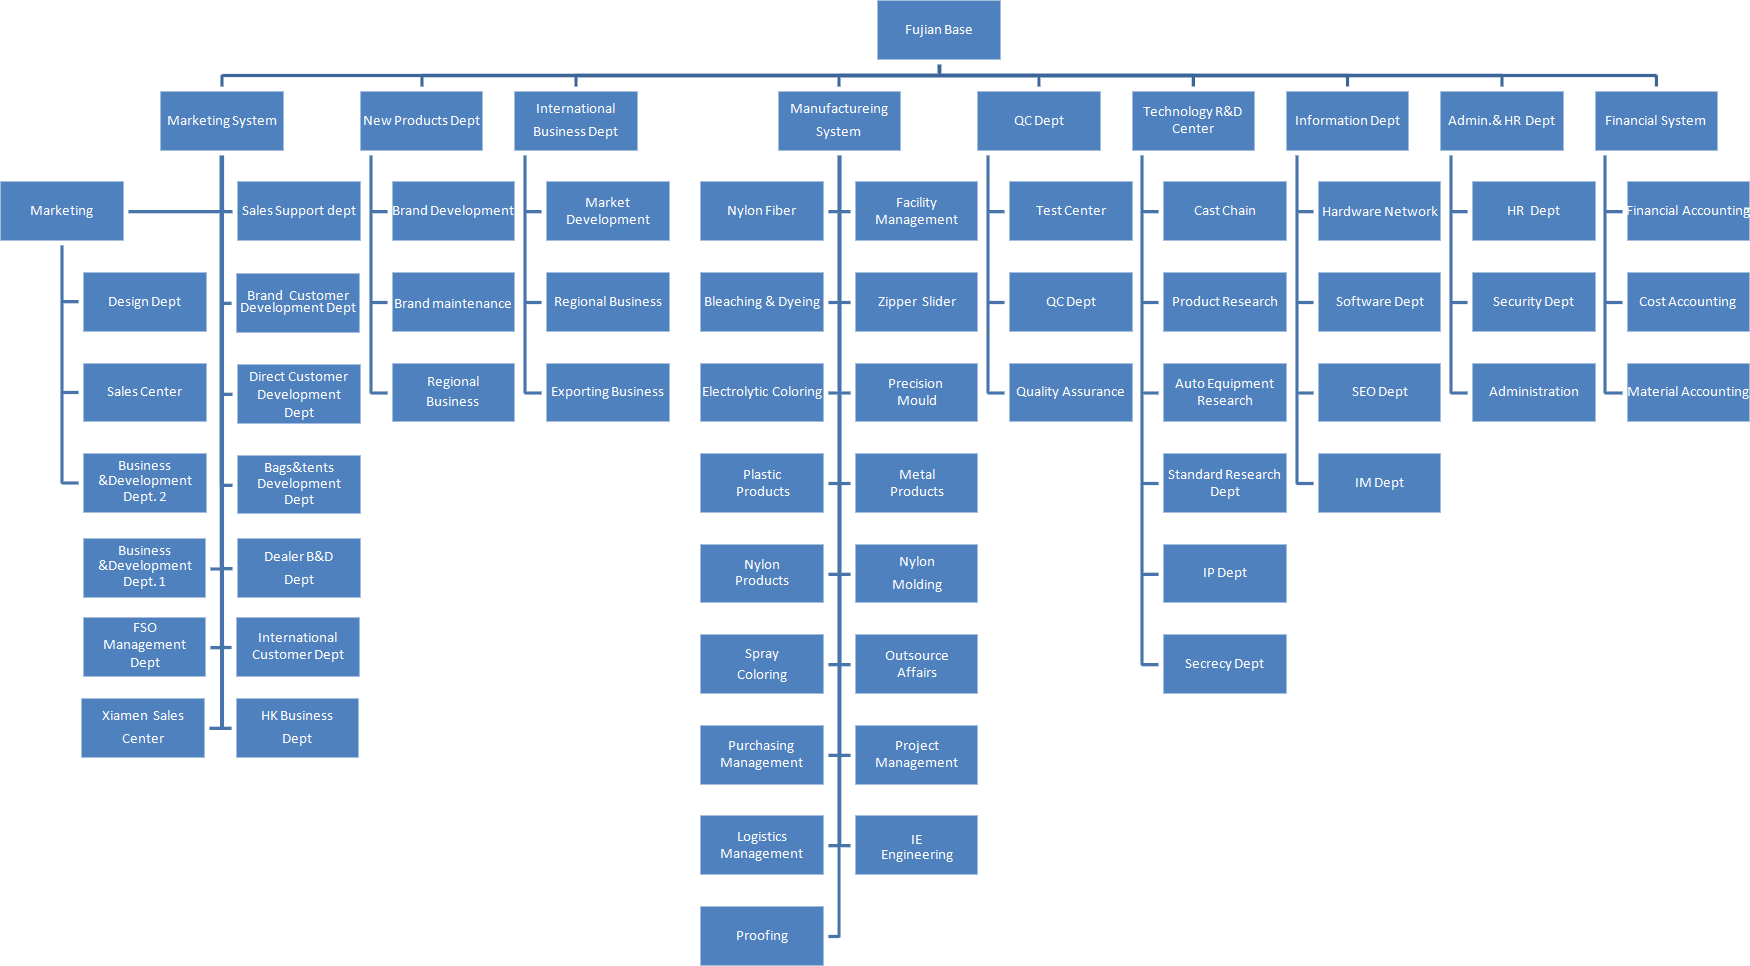 Headquarter Organization of SBS Zipper